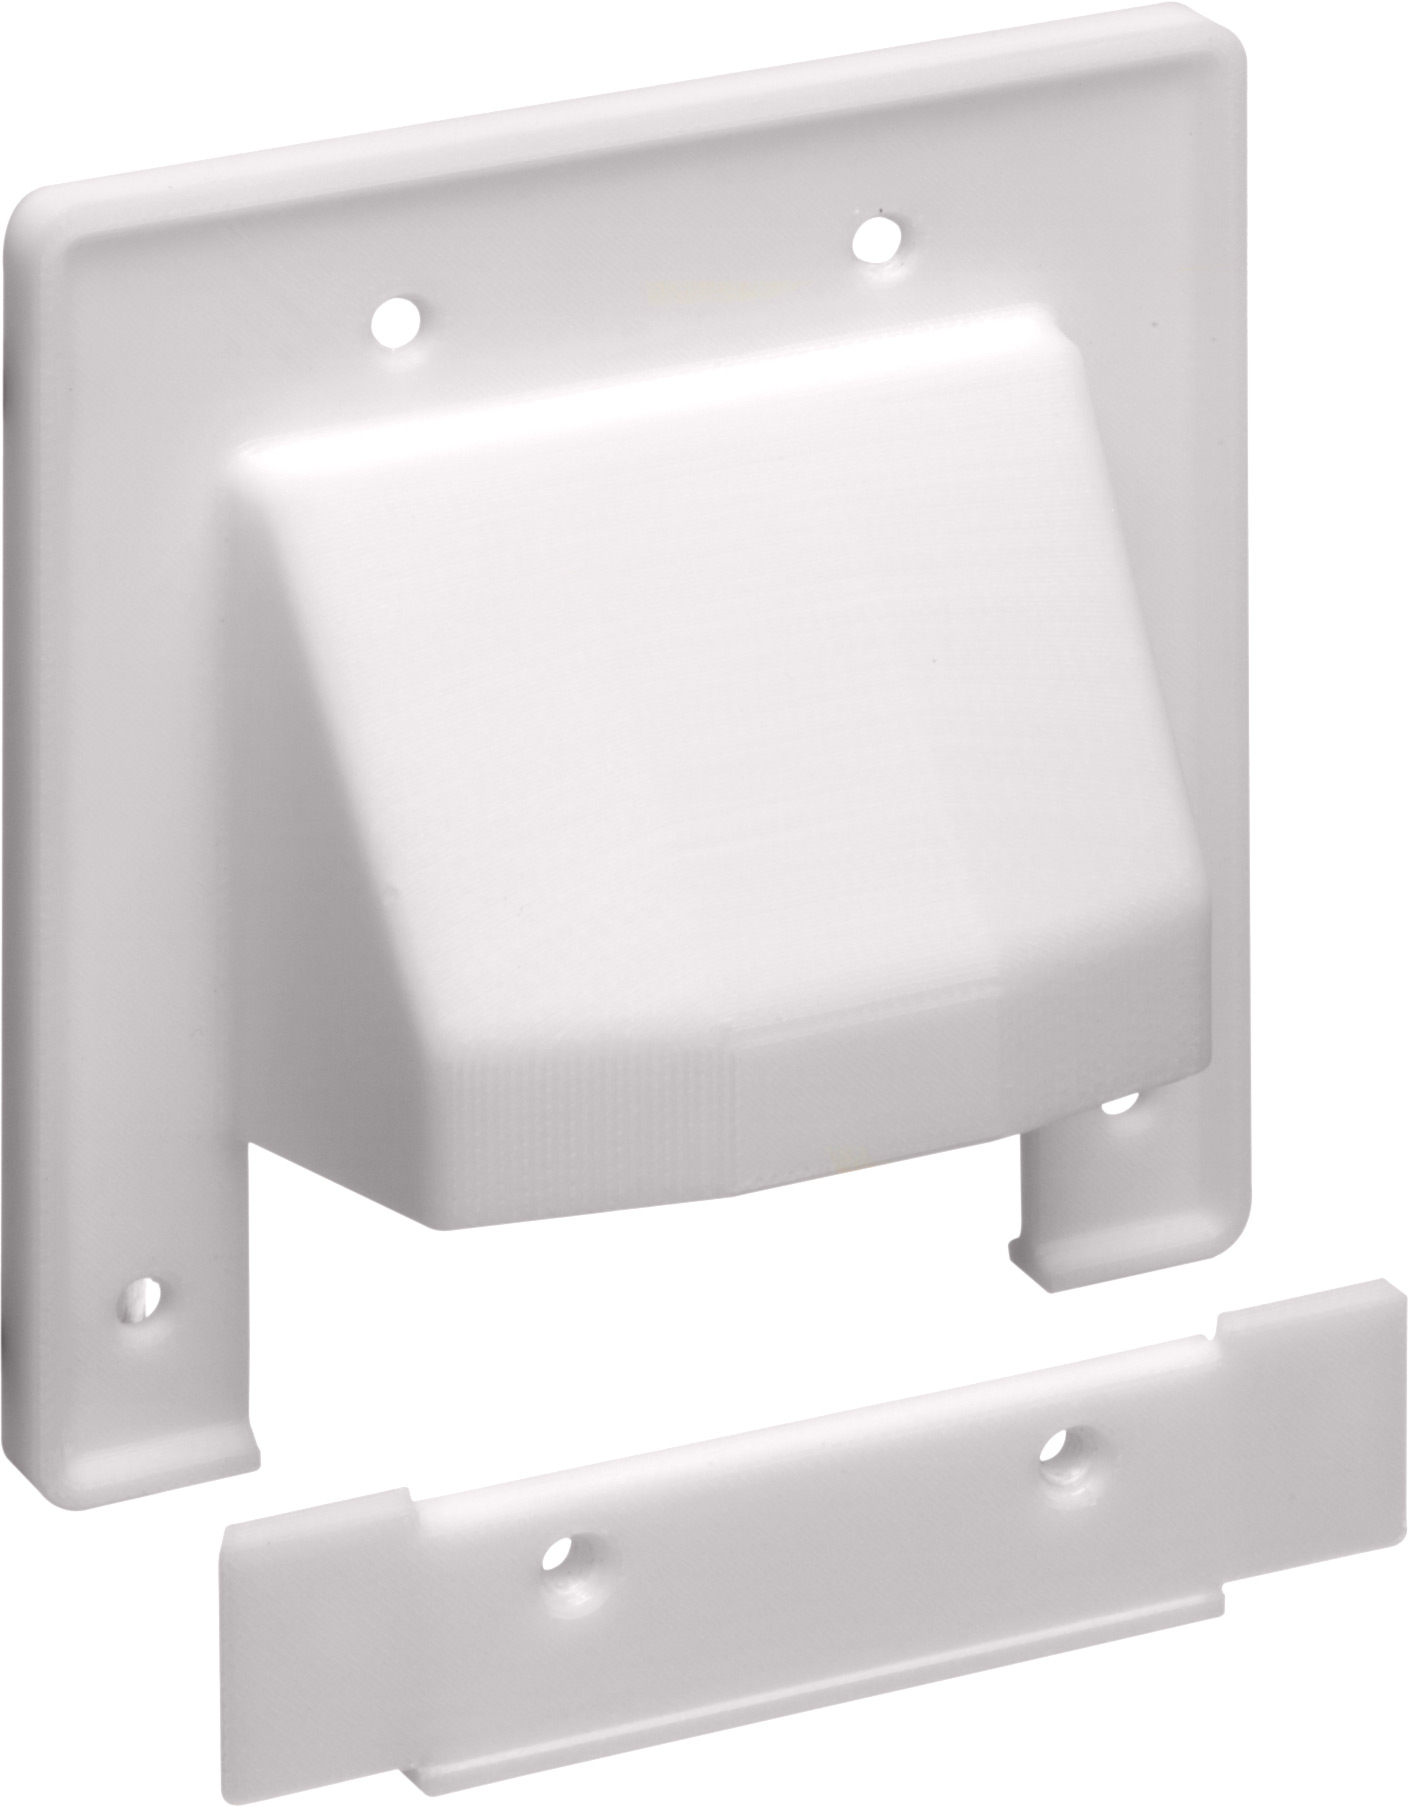 ARL CER2 Cable 2G 2-PC Scoop Plate White